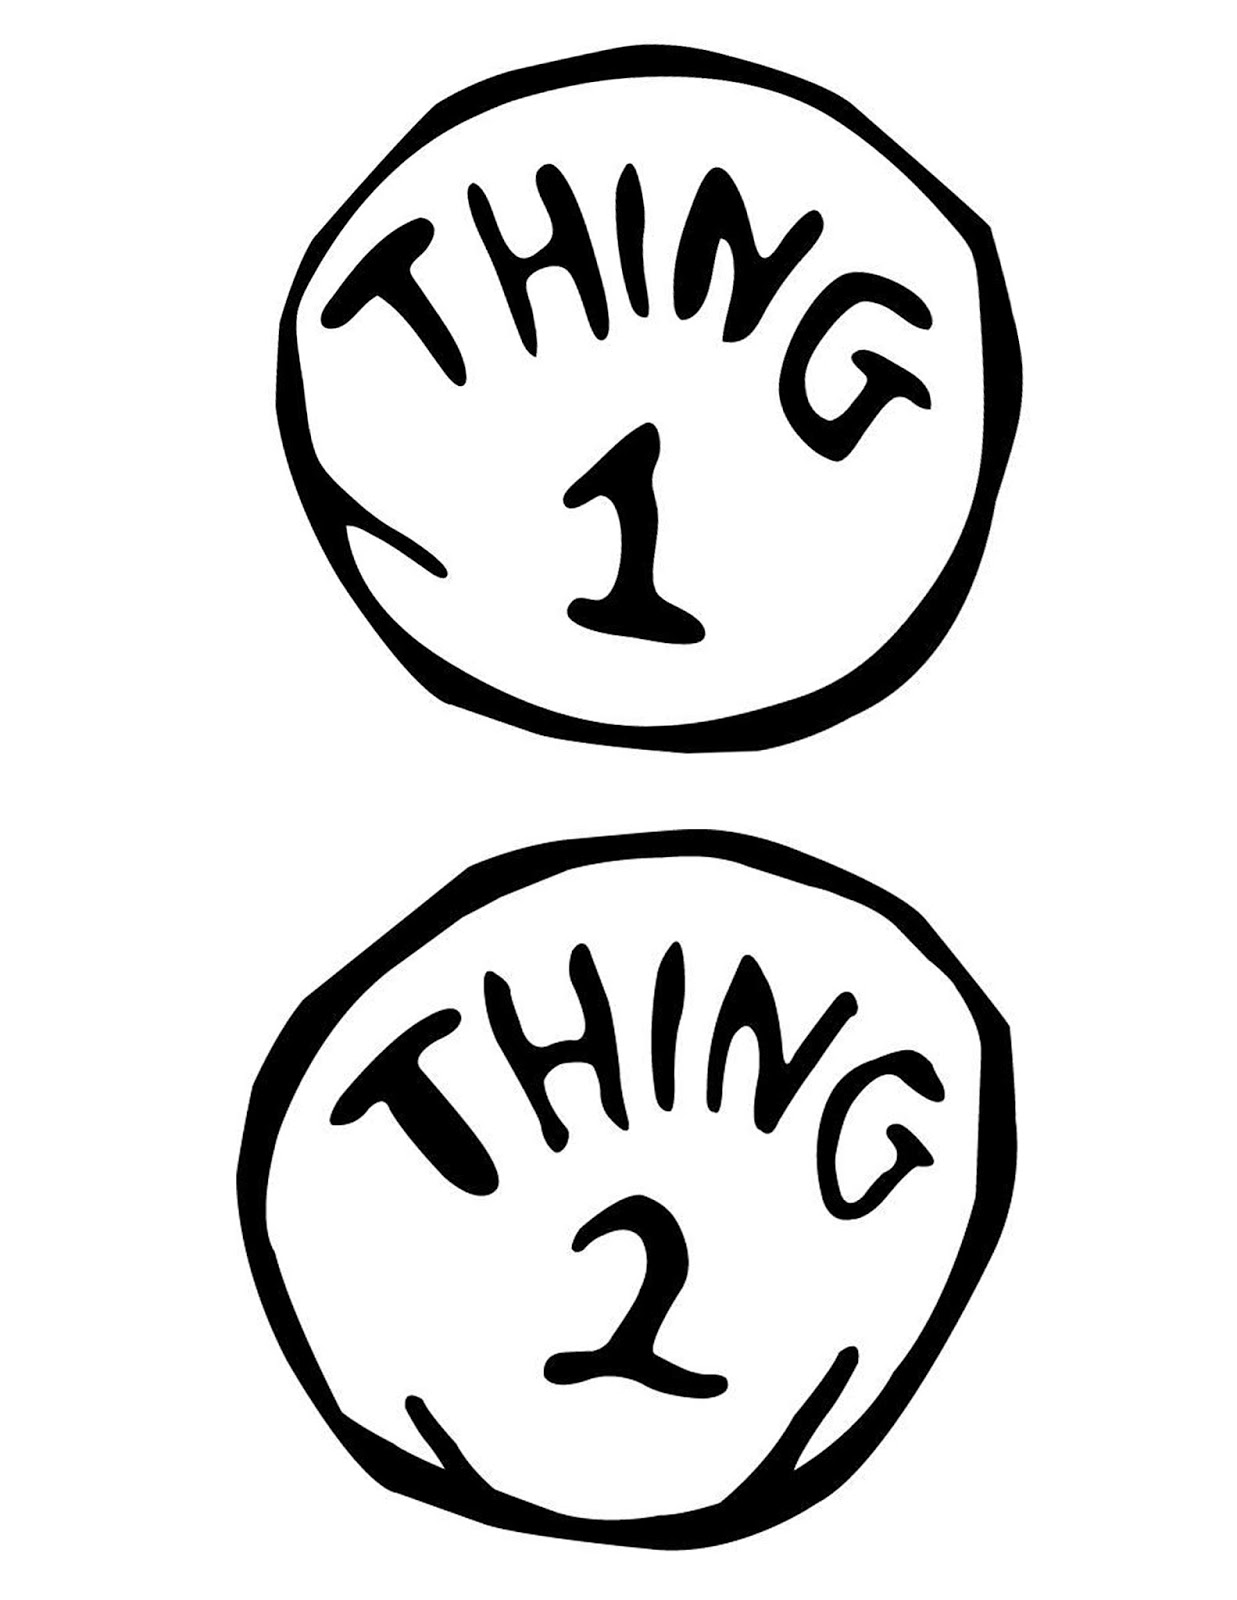 Handy image intended for printable thing 1 logo